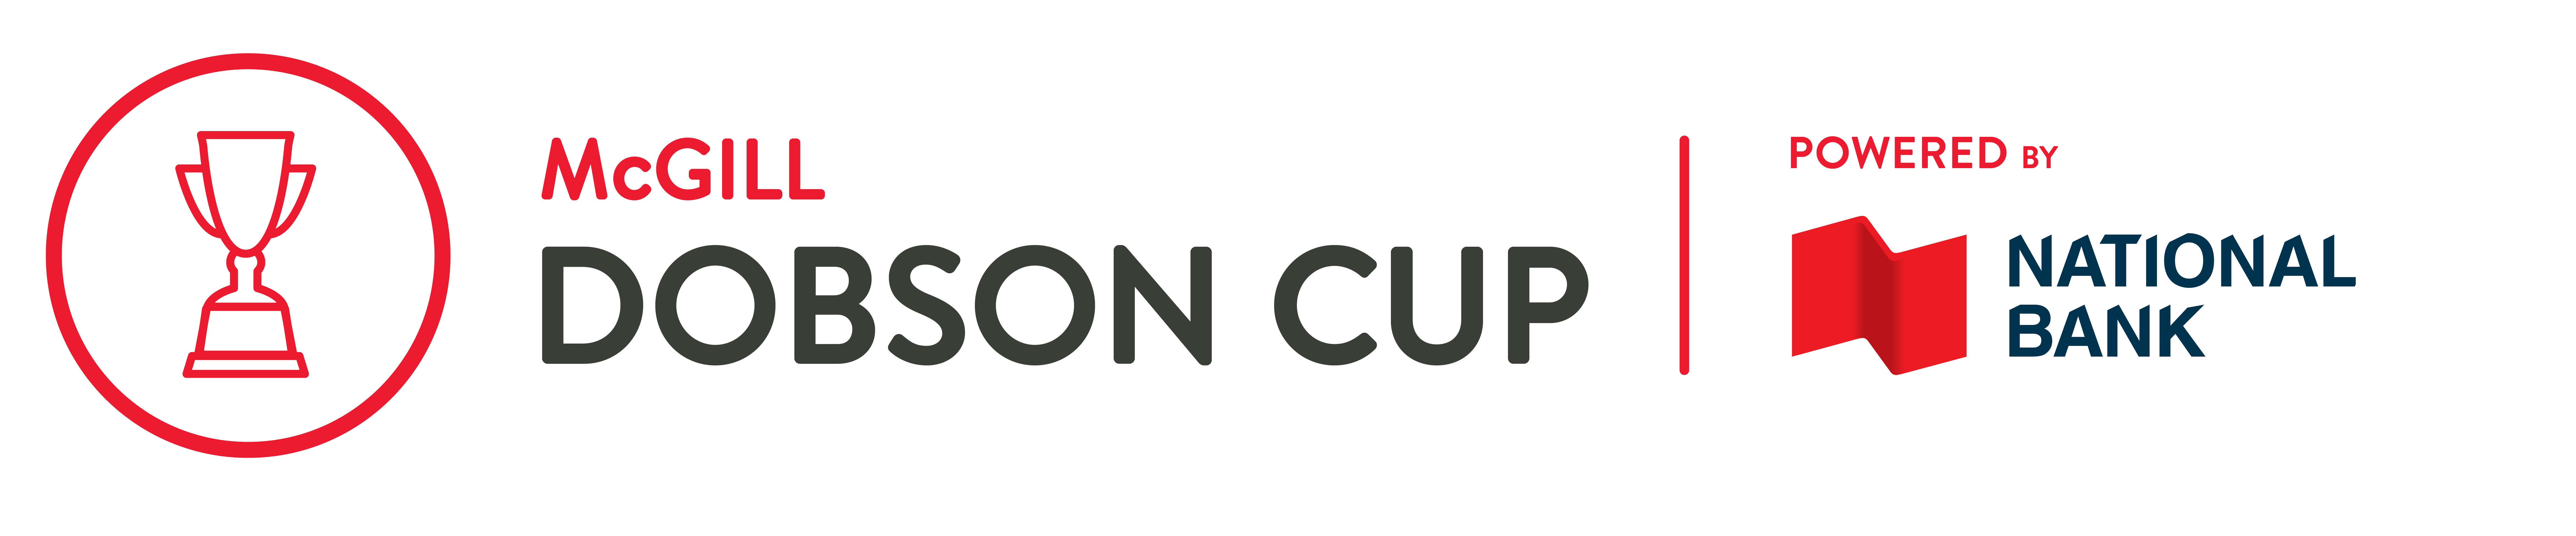 McGill Dobson Cup